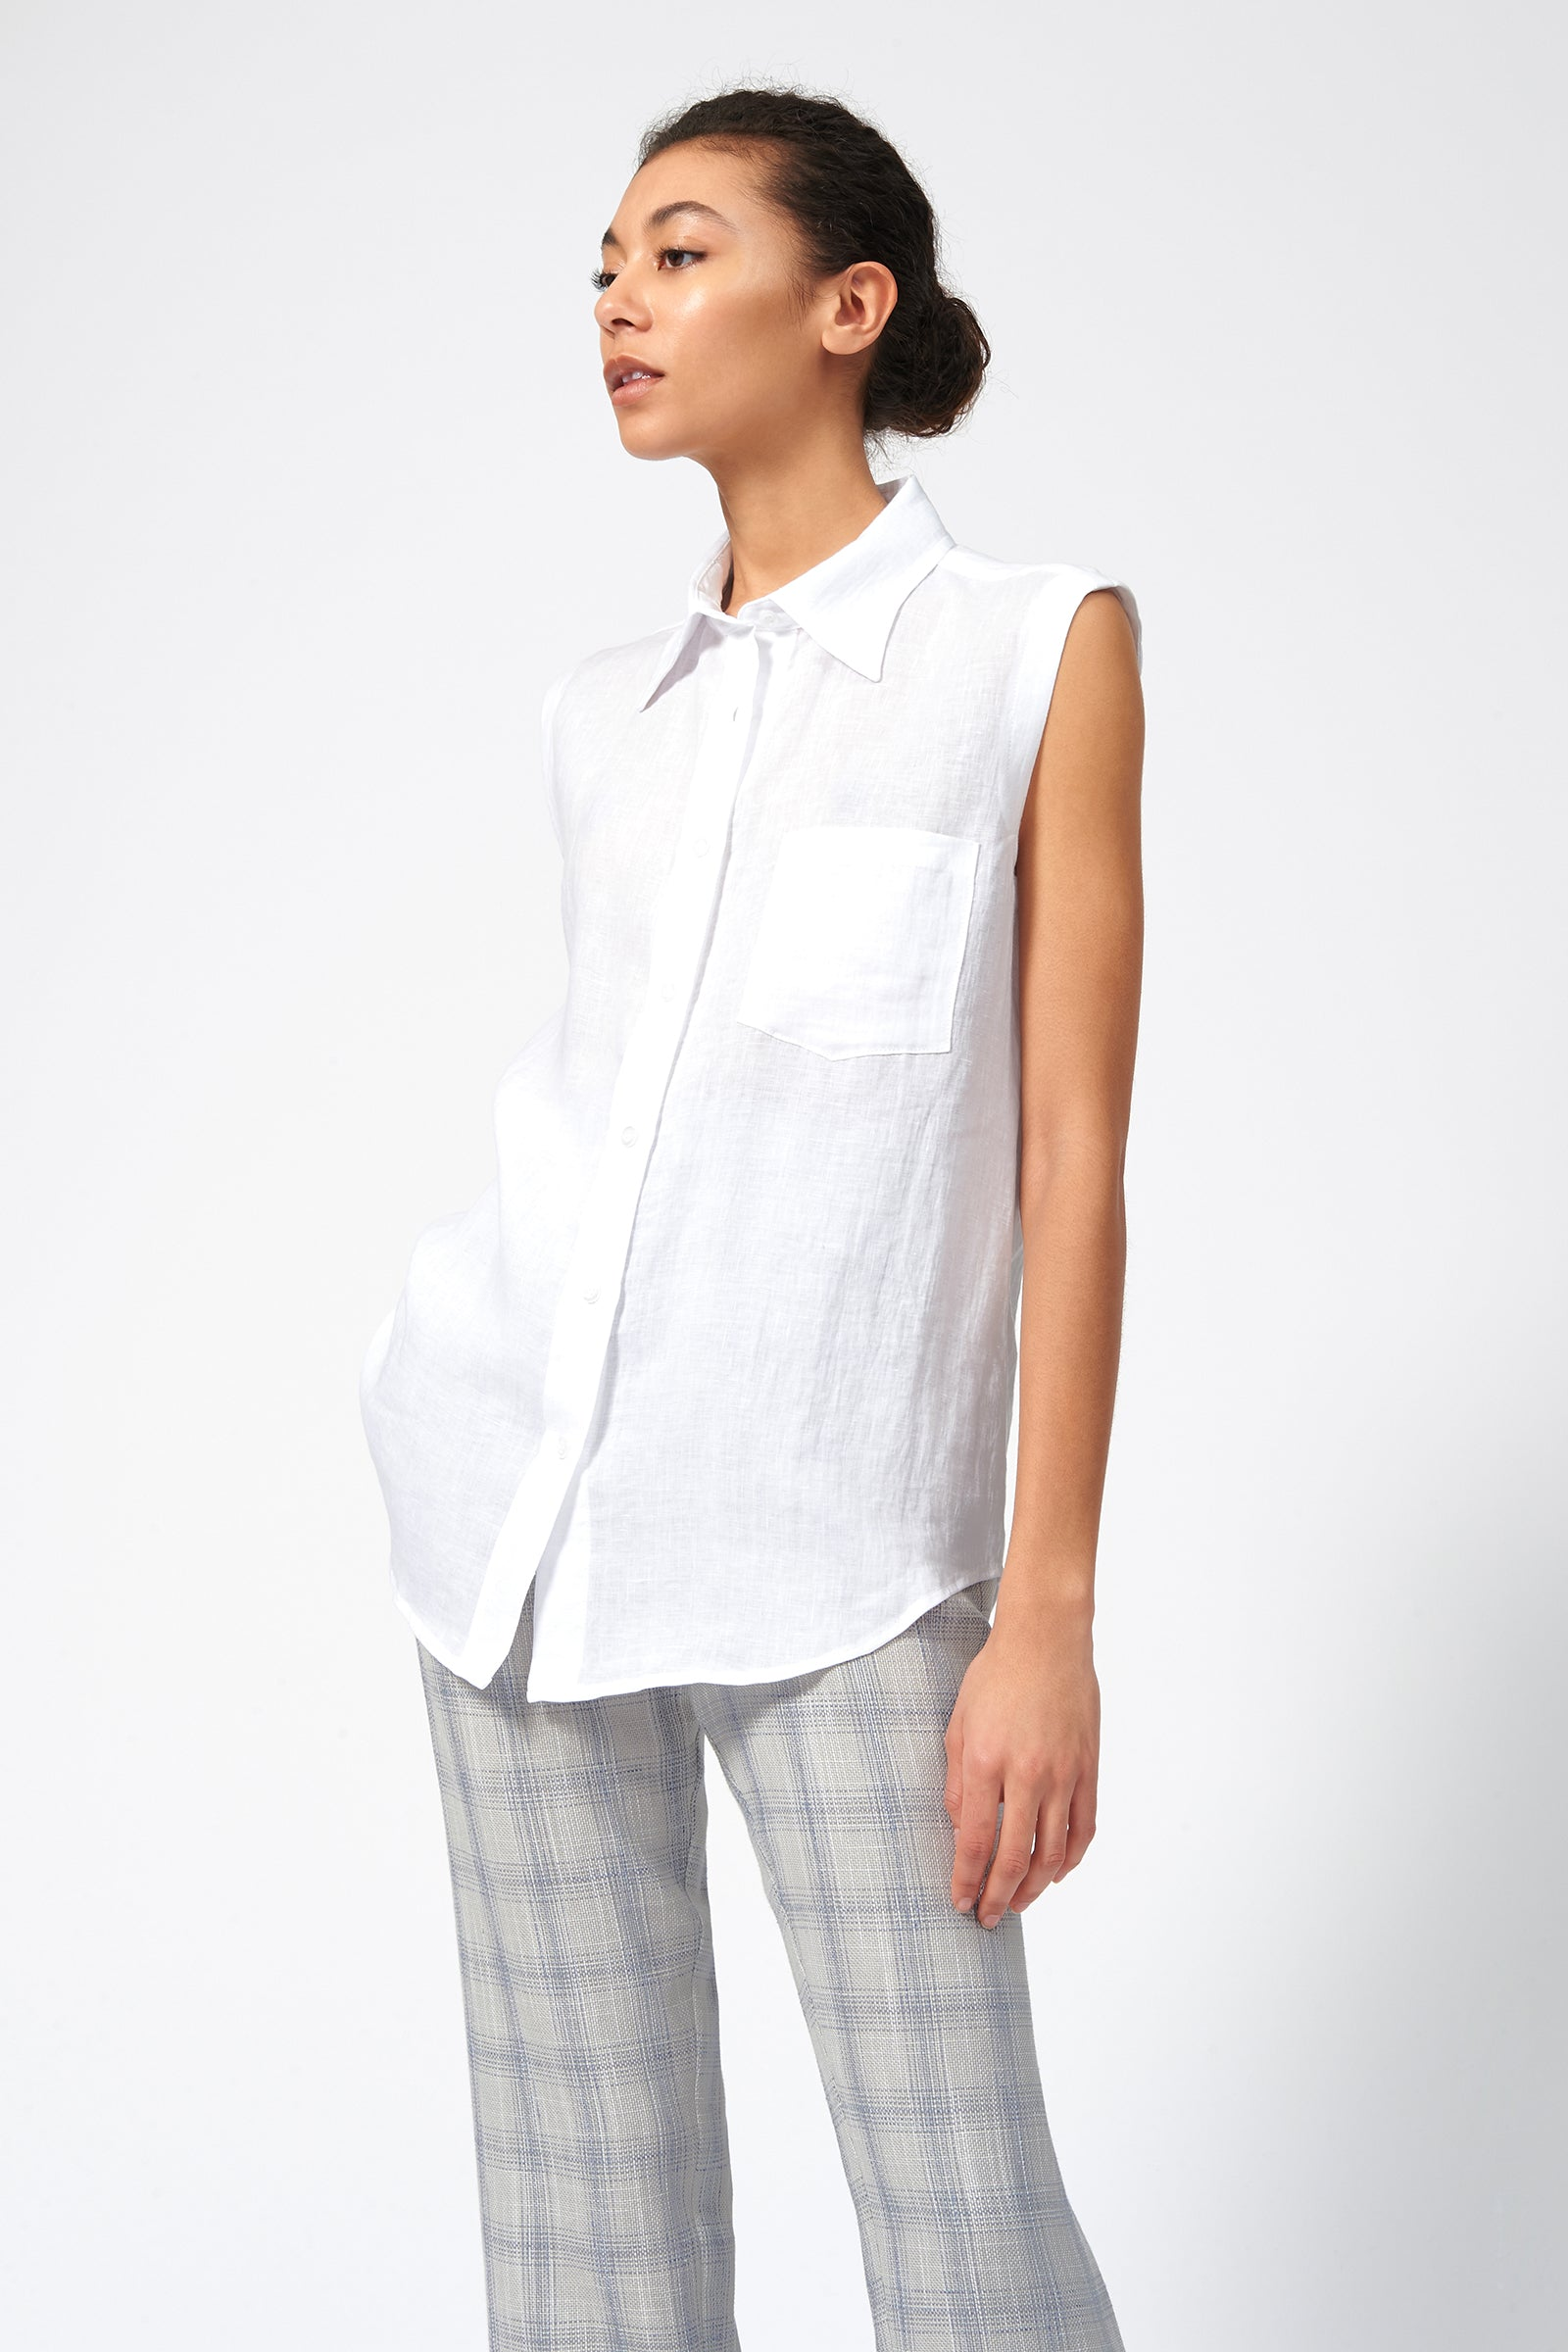 Kal Rieman Sleeveless Summer Shirt in White Linen on Model Front View